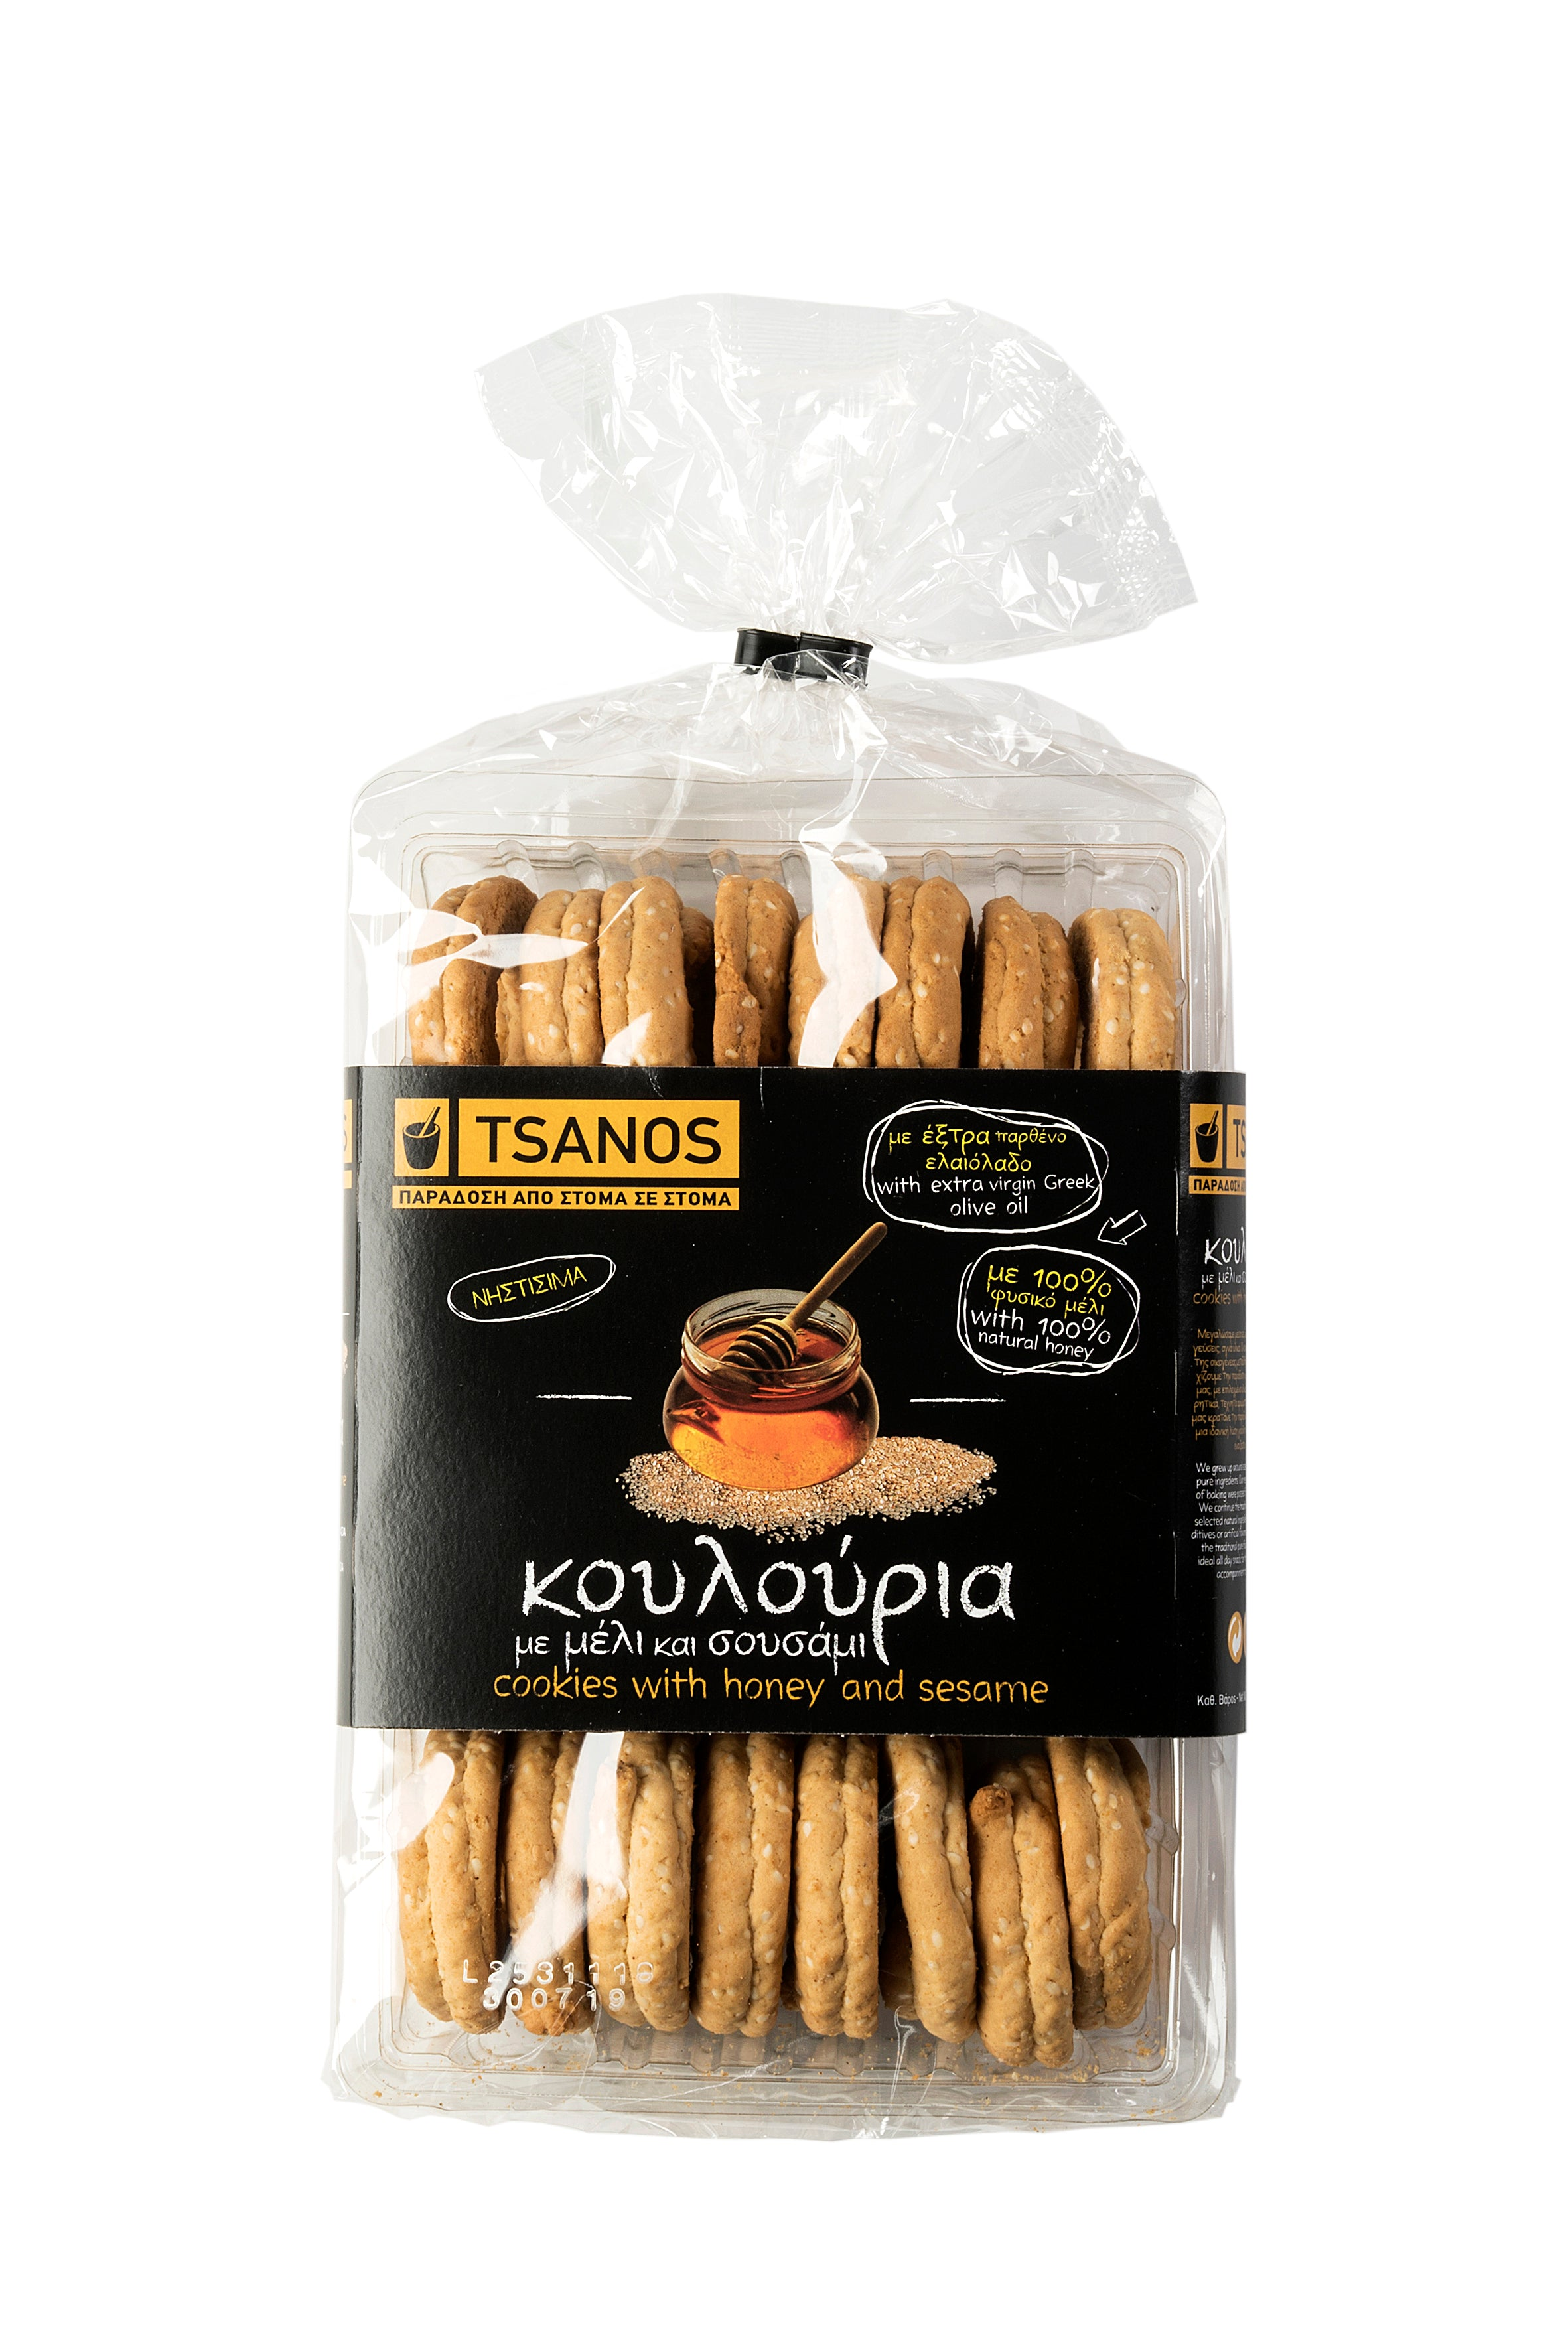 Tsanos Cookies with Honey and Sesame